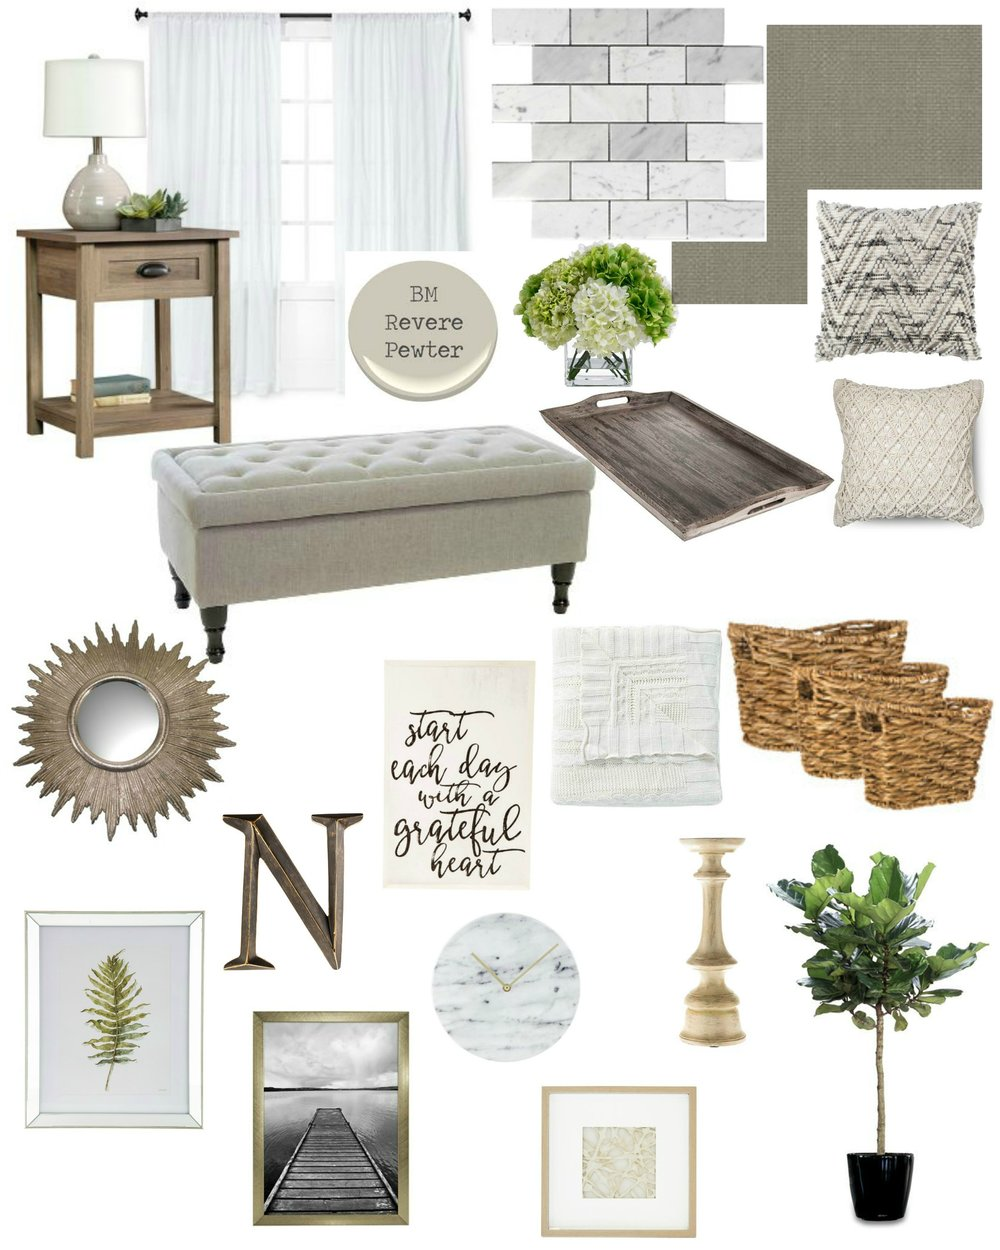 Cindy-Newby-Design-Board.jpg